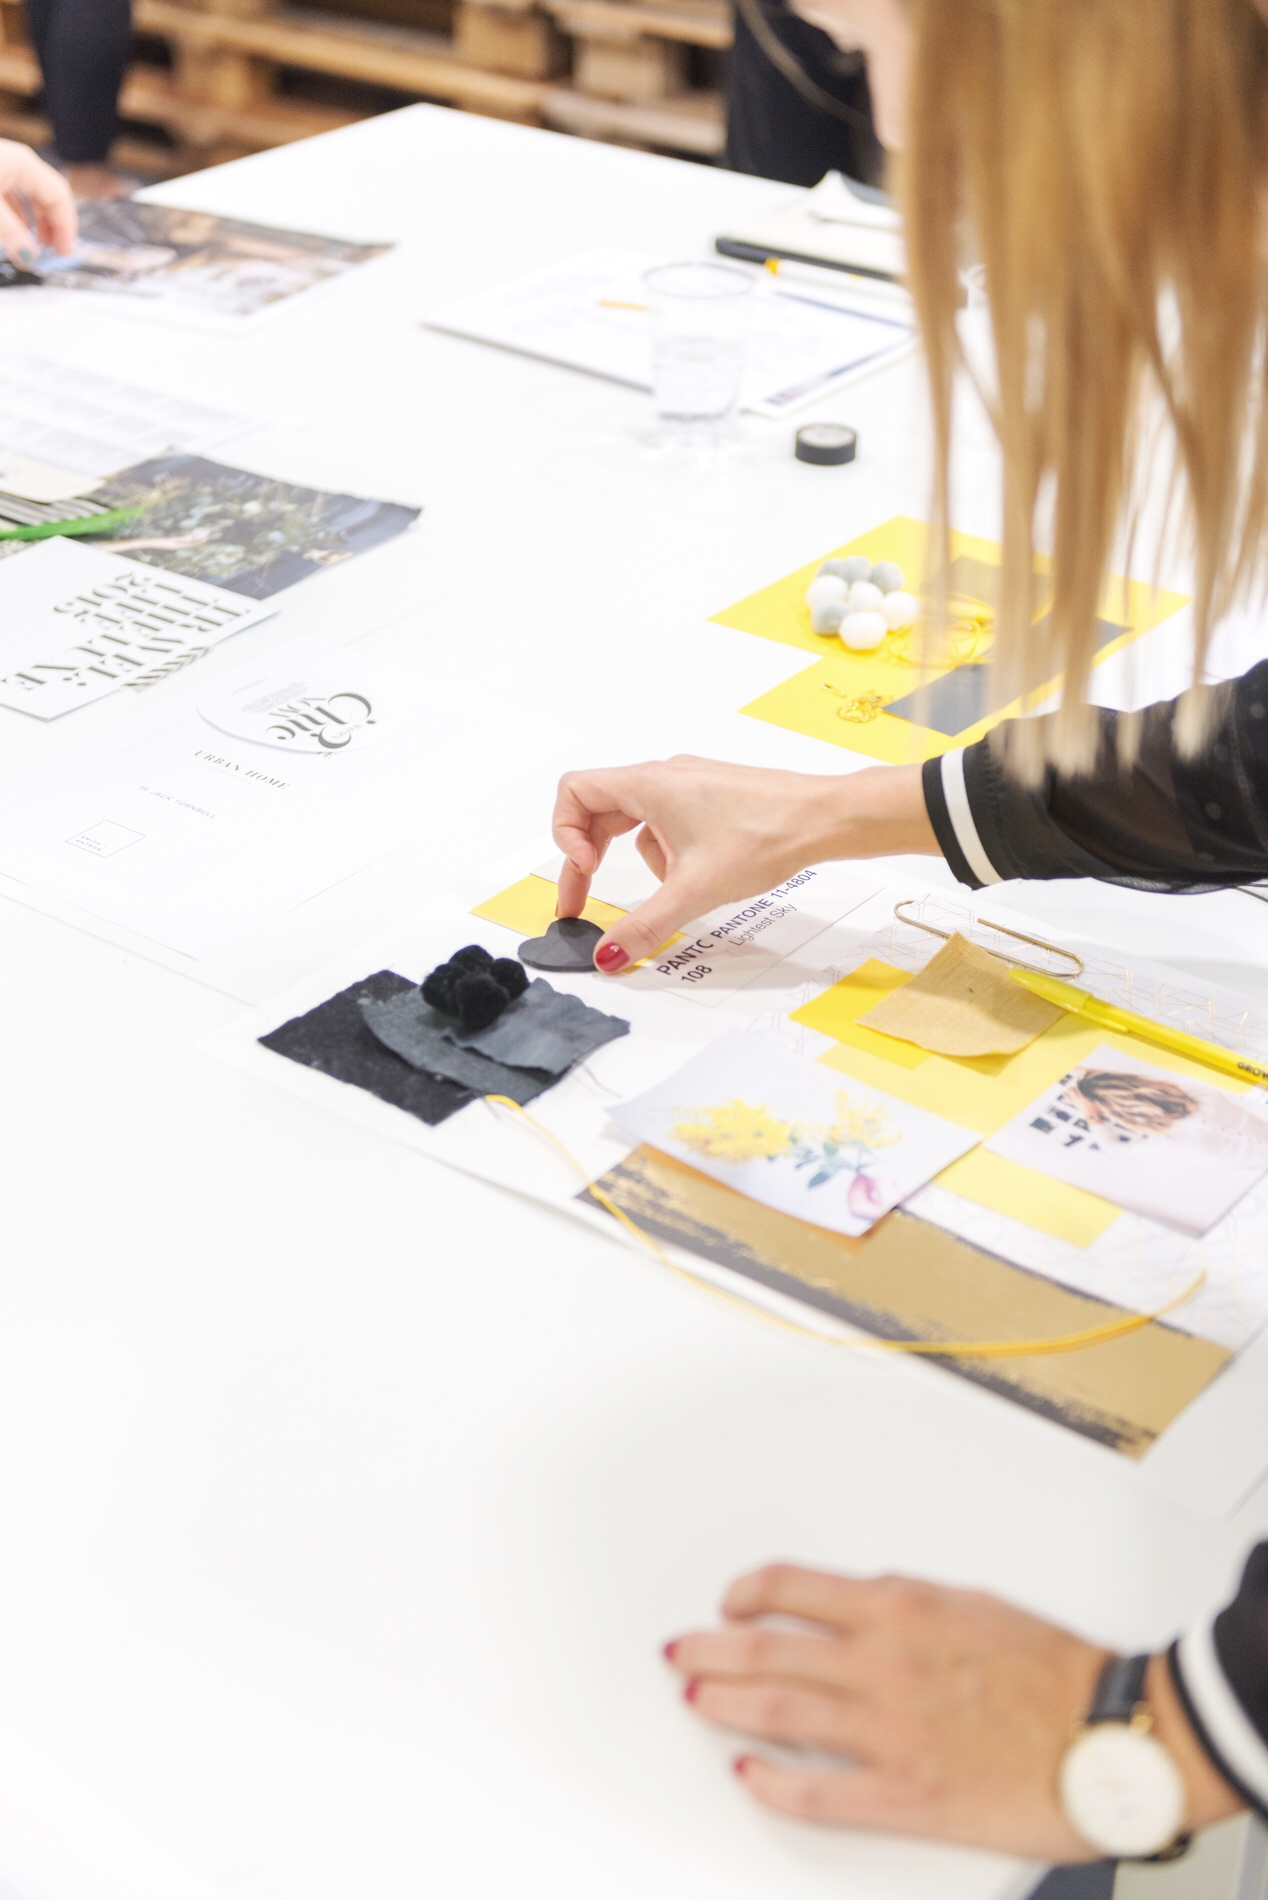 how to create a mood board - the workshops